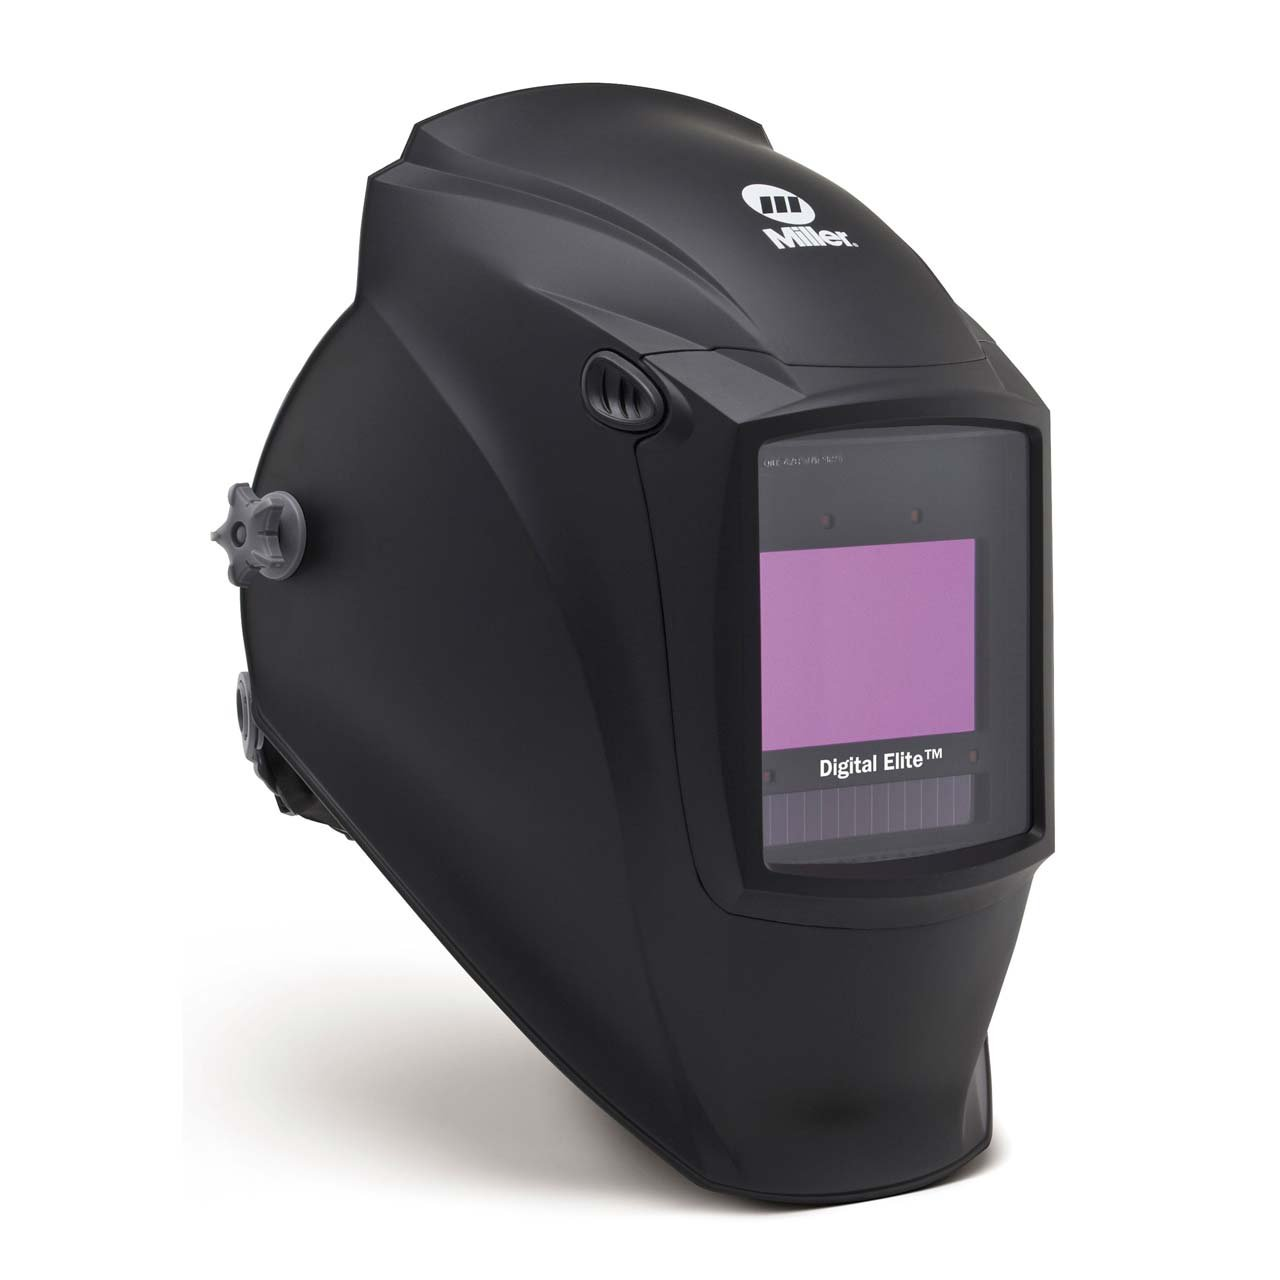 Best Welding Helmet 2021 - Top Picks Reviews and Buyer Guide